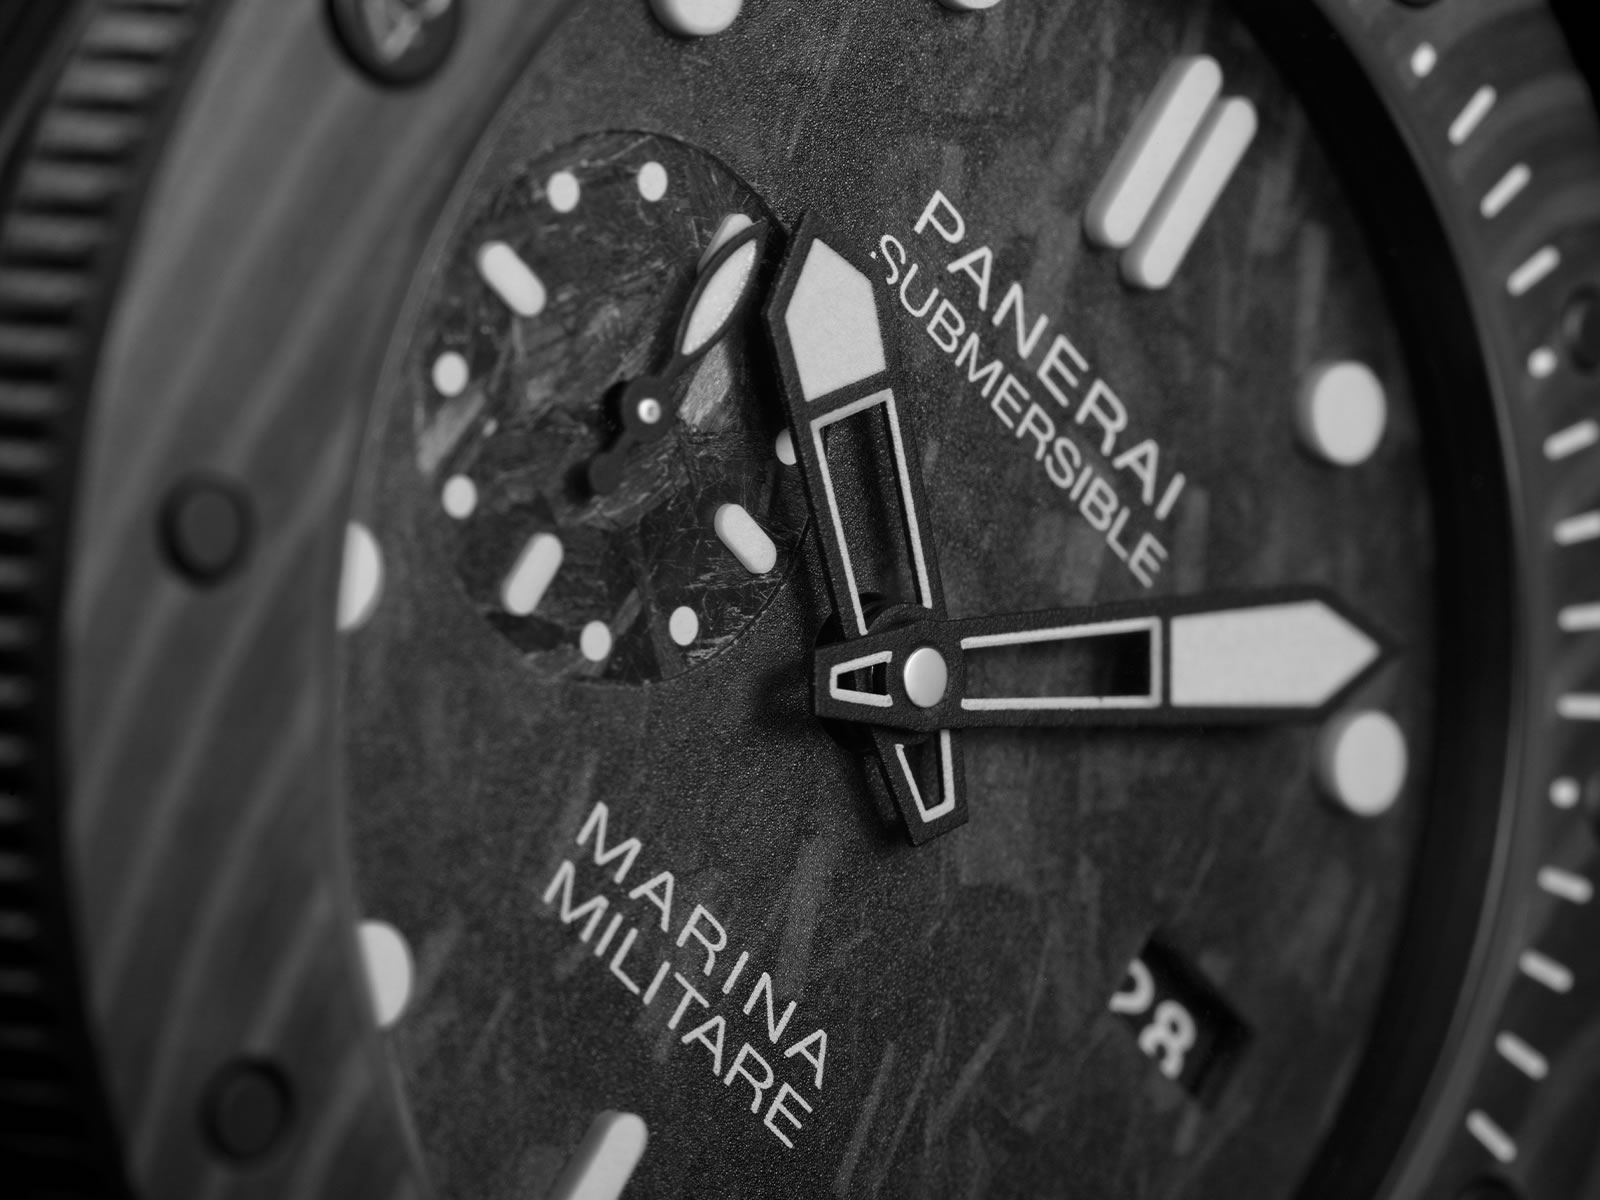 pam00979-officine-panerai-submersible-marina-militare-carbotech-2-.jpg